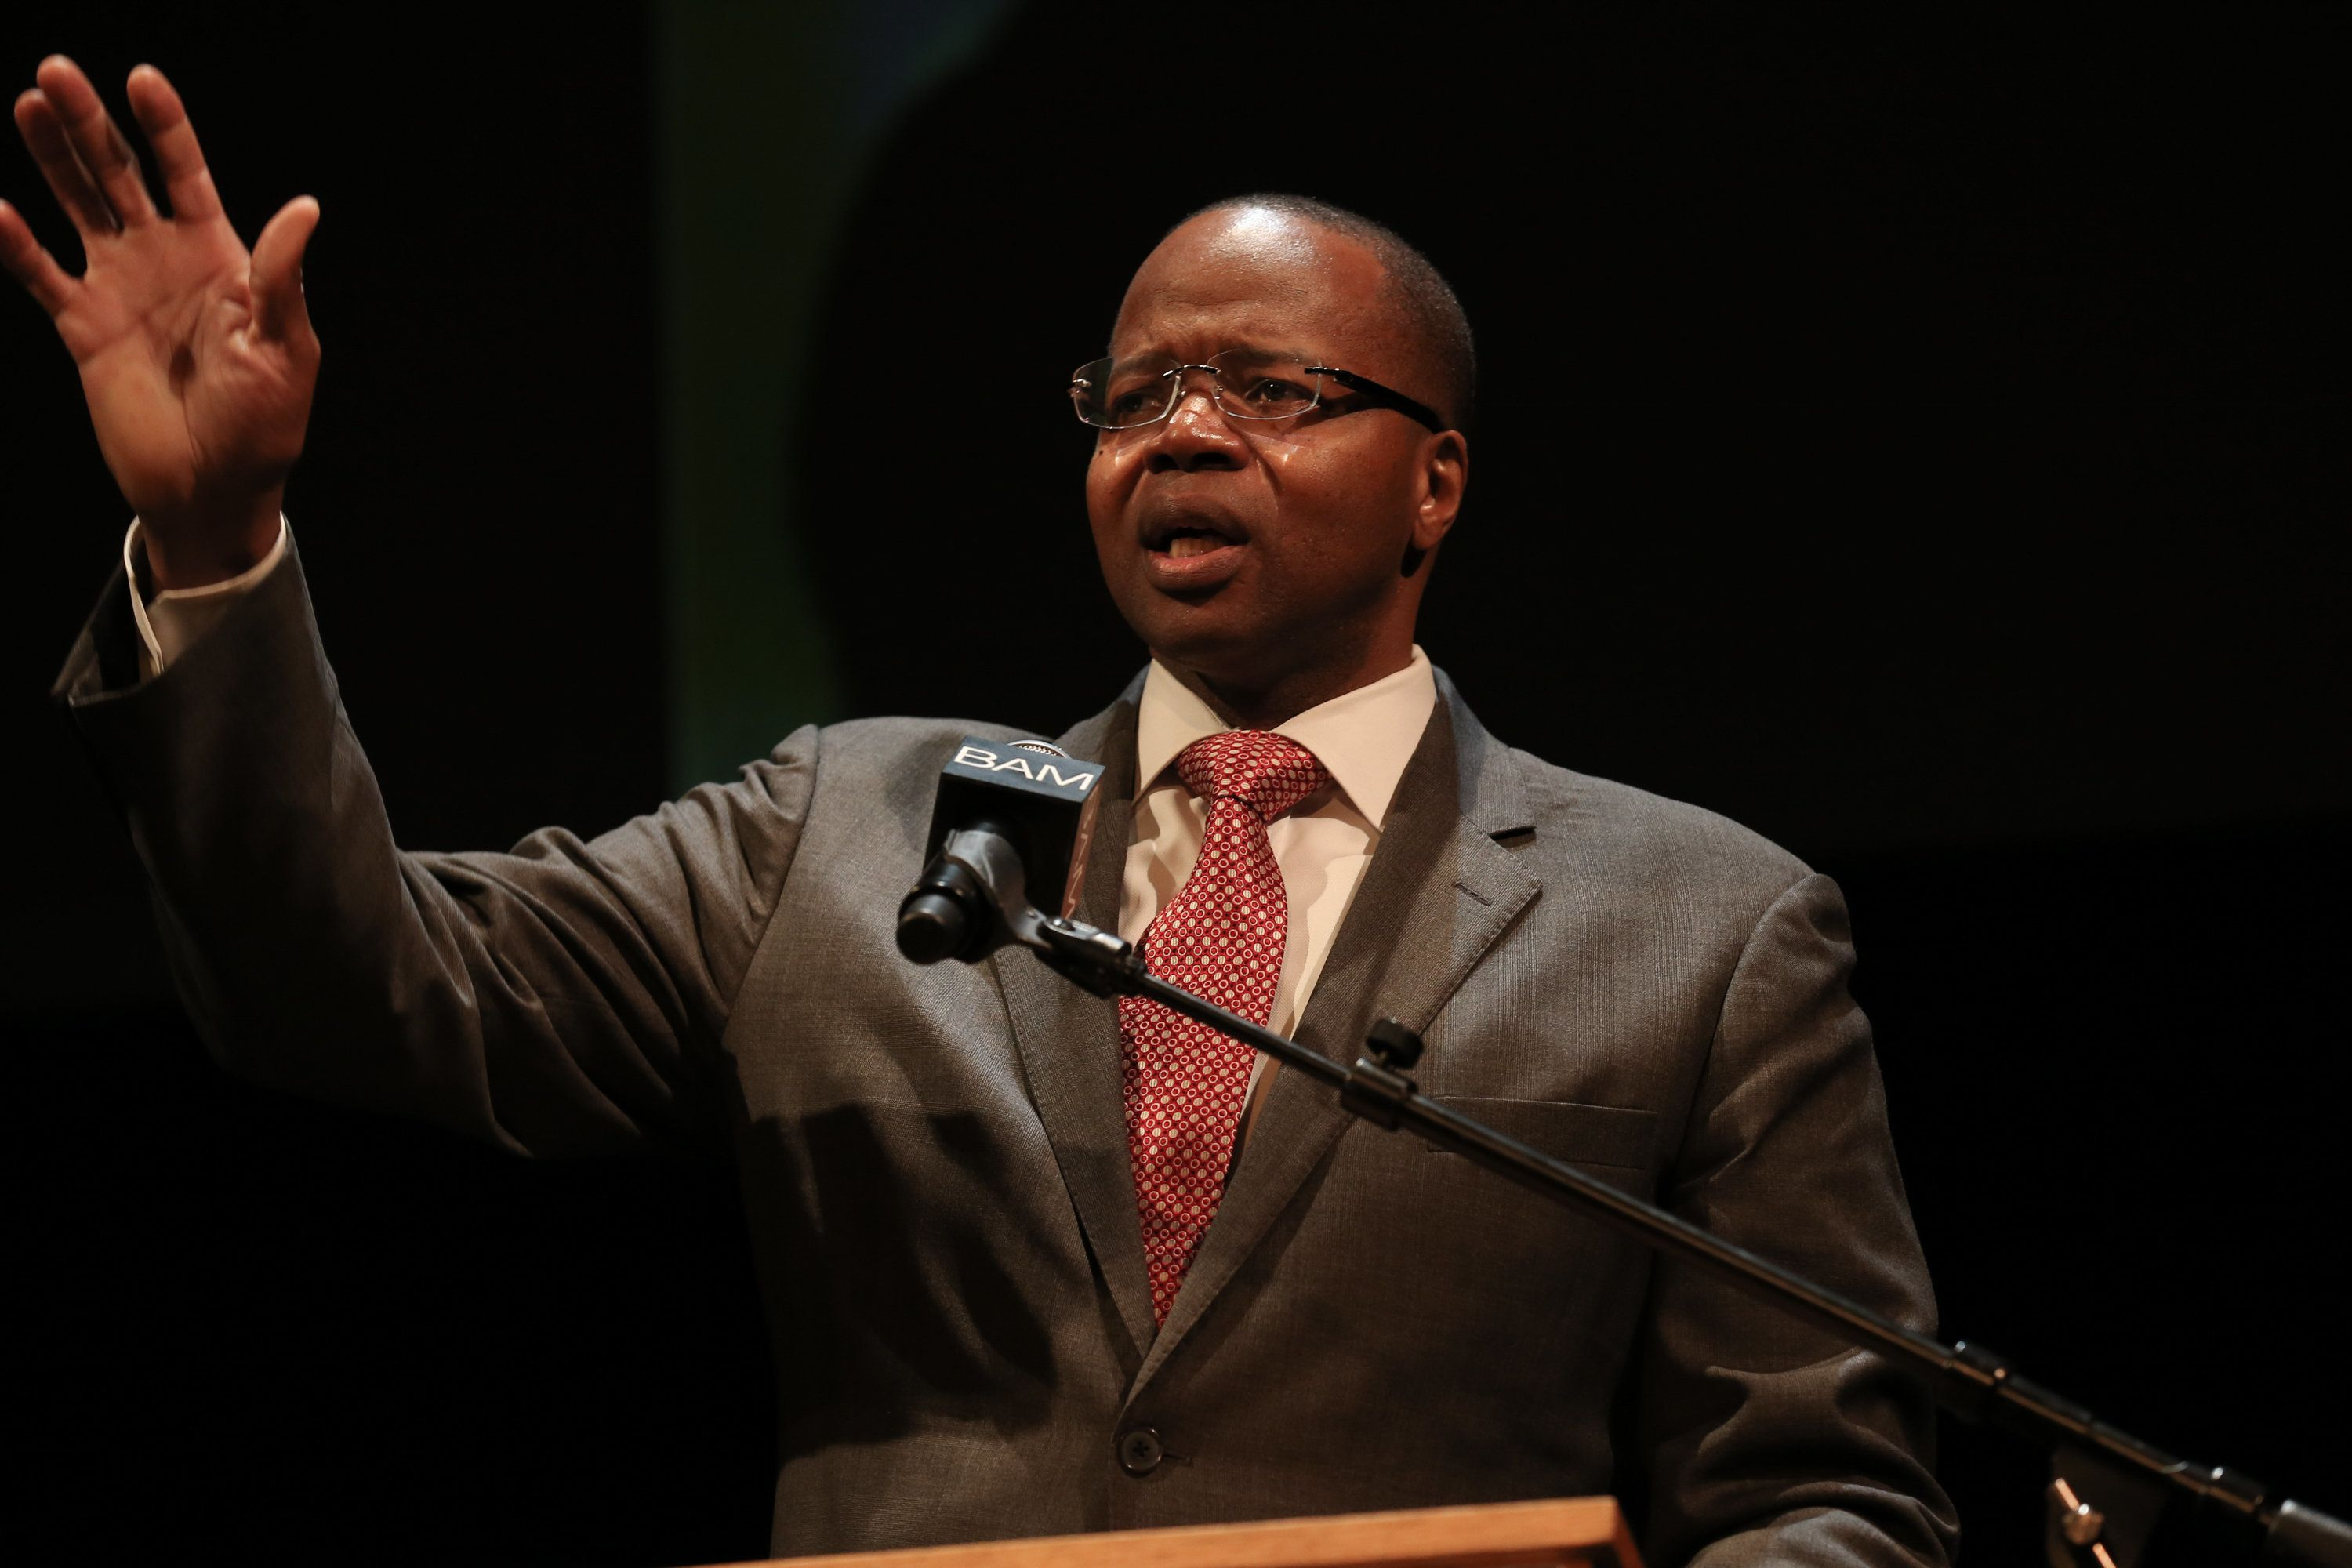 NEW YORK, NY - JANUARY 20:  Brooklyn District Attorney Ken Thompson attends the 28th Annual Brooklyn Tribute to Dr. Martin Luther King Jr. at BAM Howard Gilman Opera House on January 20, 2014 in New York City.  (Photo by Charles Norfleet/Getty Images)